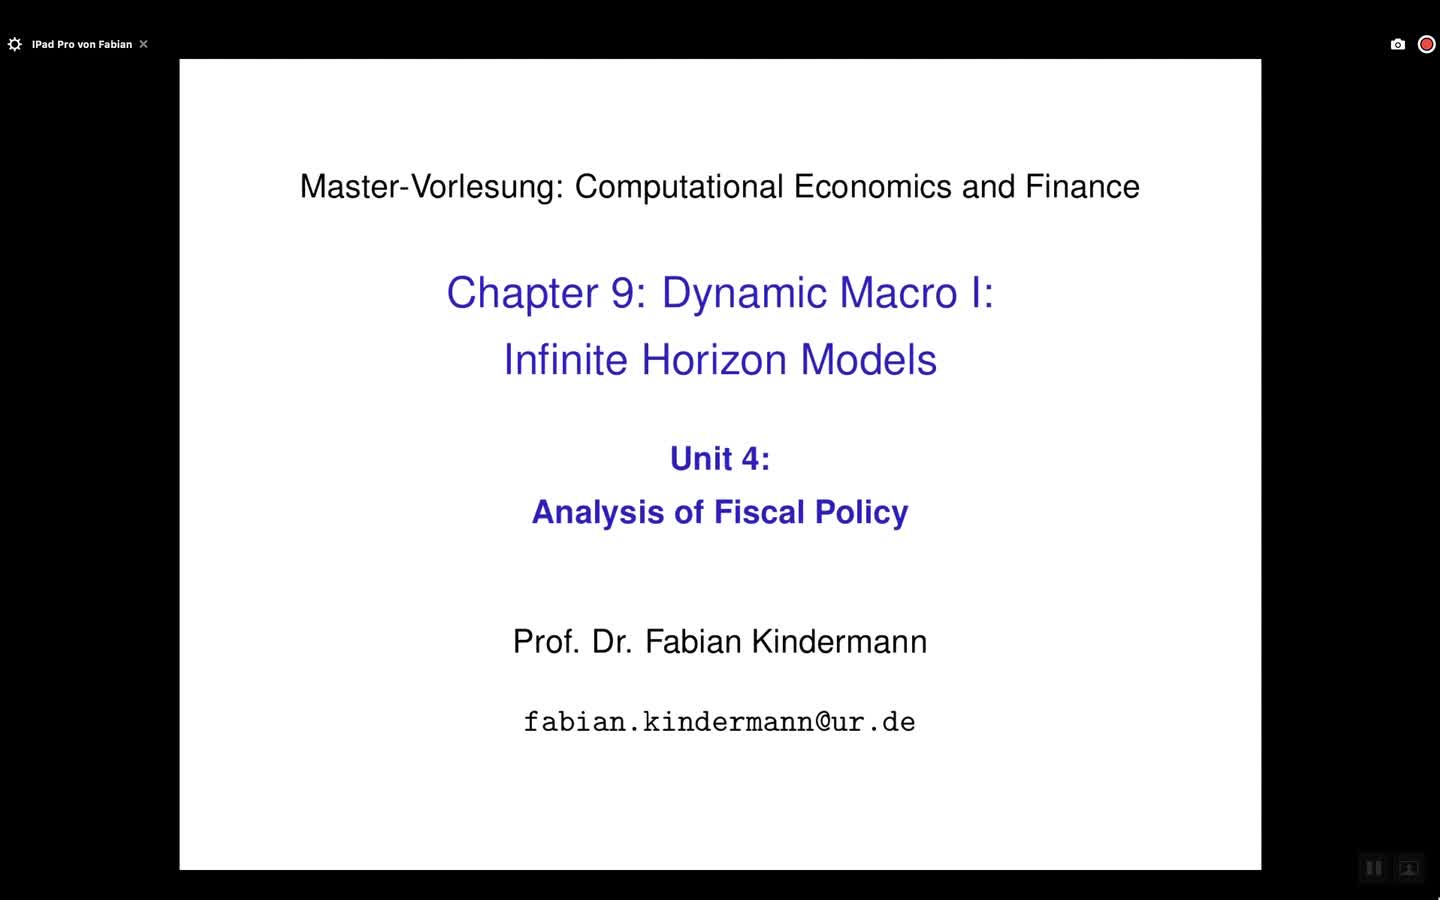 Chapter 9 - Unit 4 - Analysis of Fiscal Policy